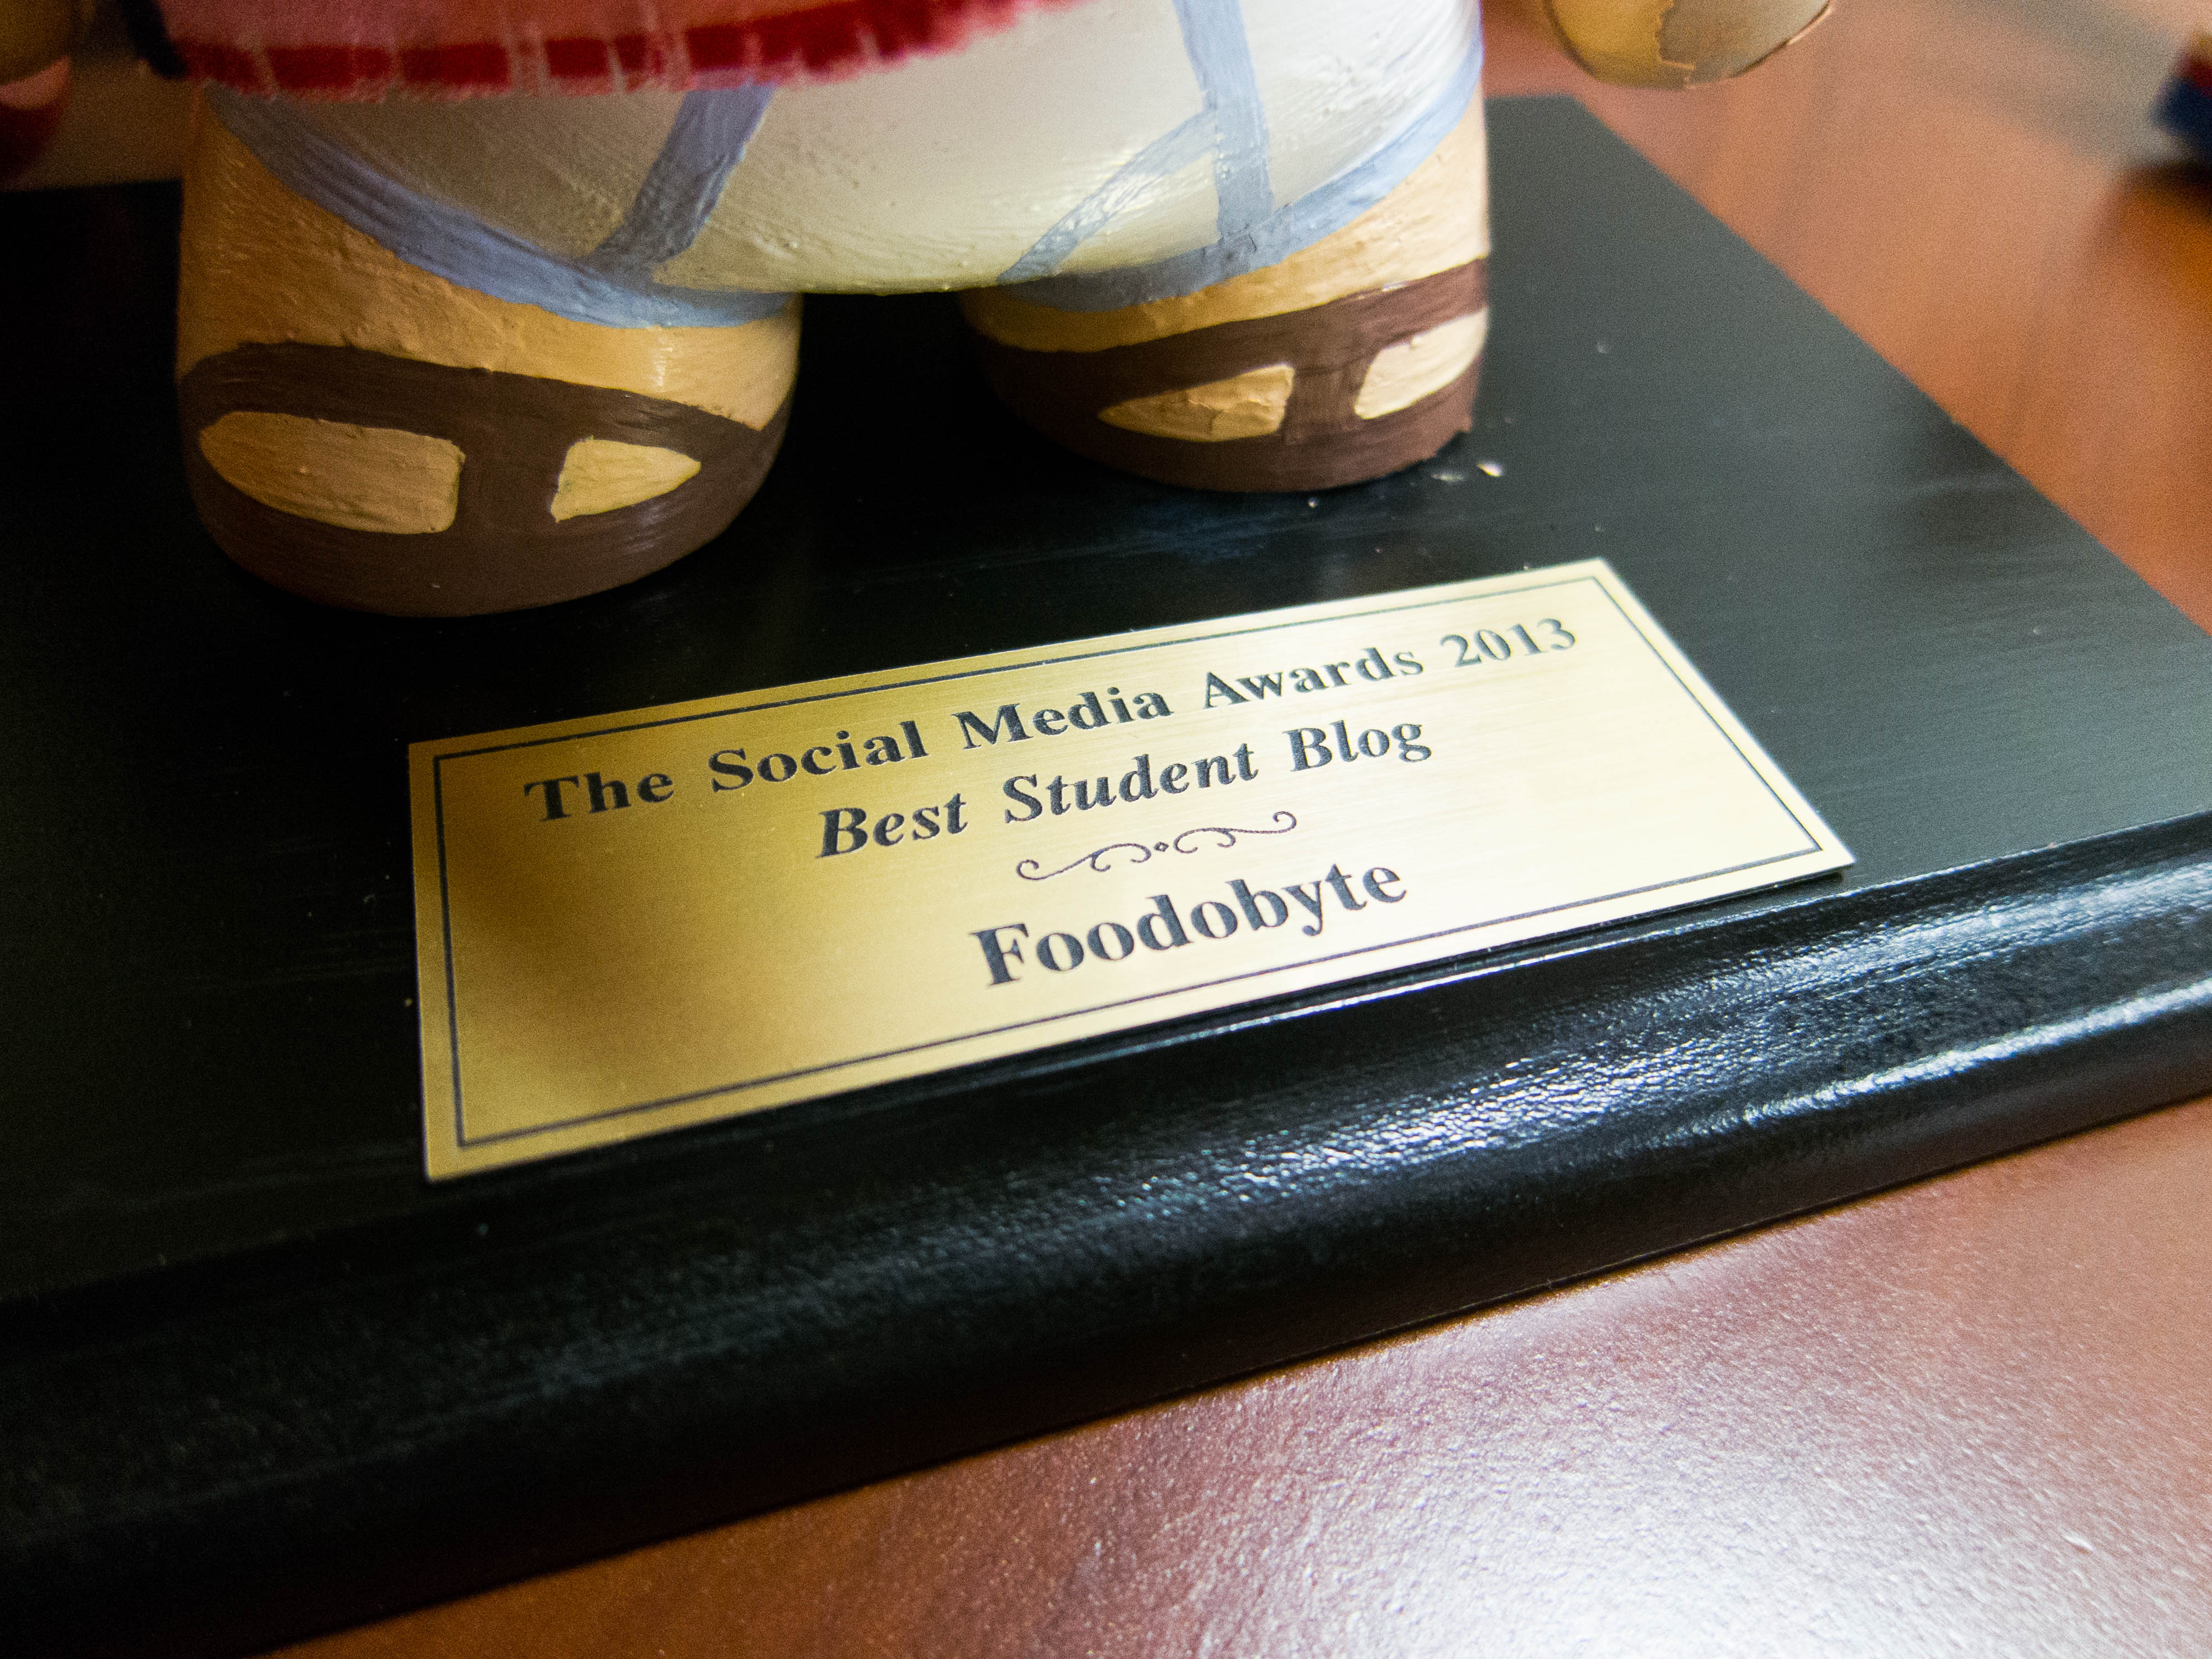 Best Student Blog Award